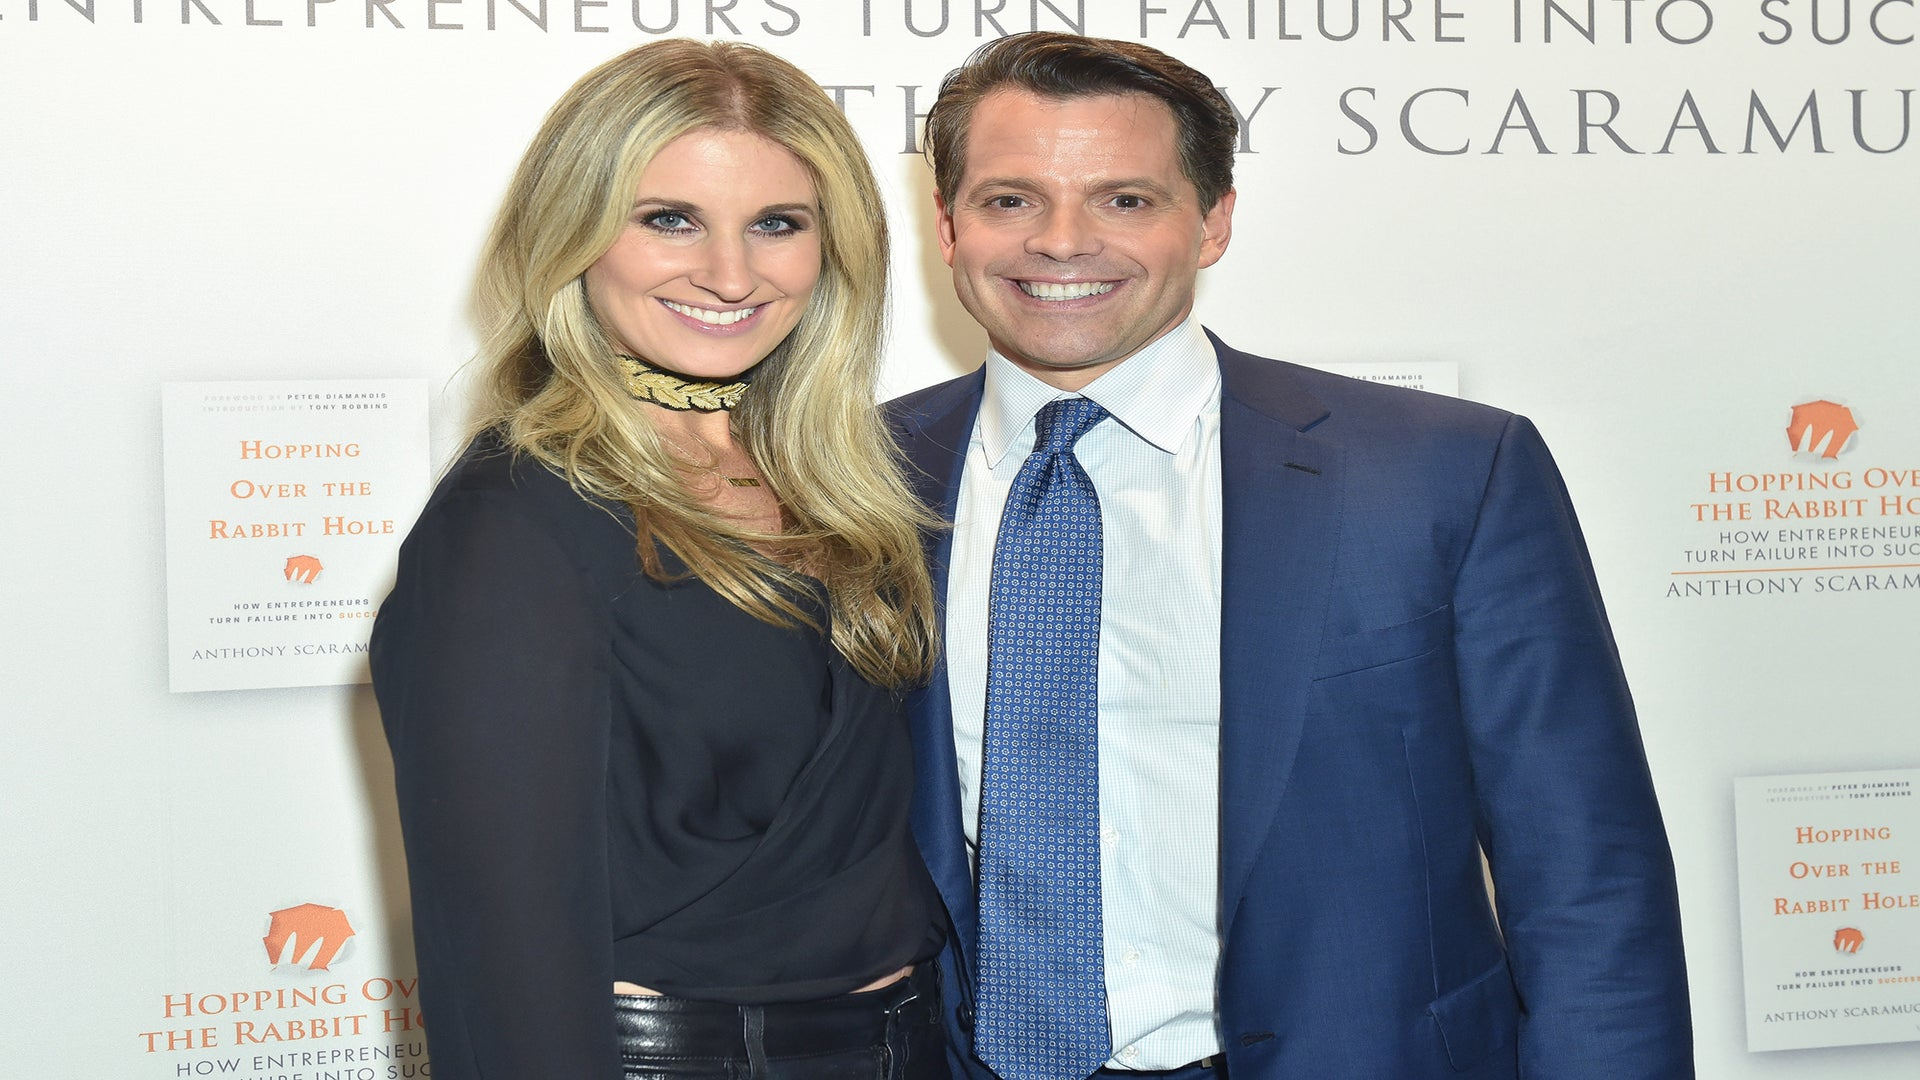 Anthony Scaramucci's Wife Filed for Divorce from Him When She Was 9 Months Pregnant: Report